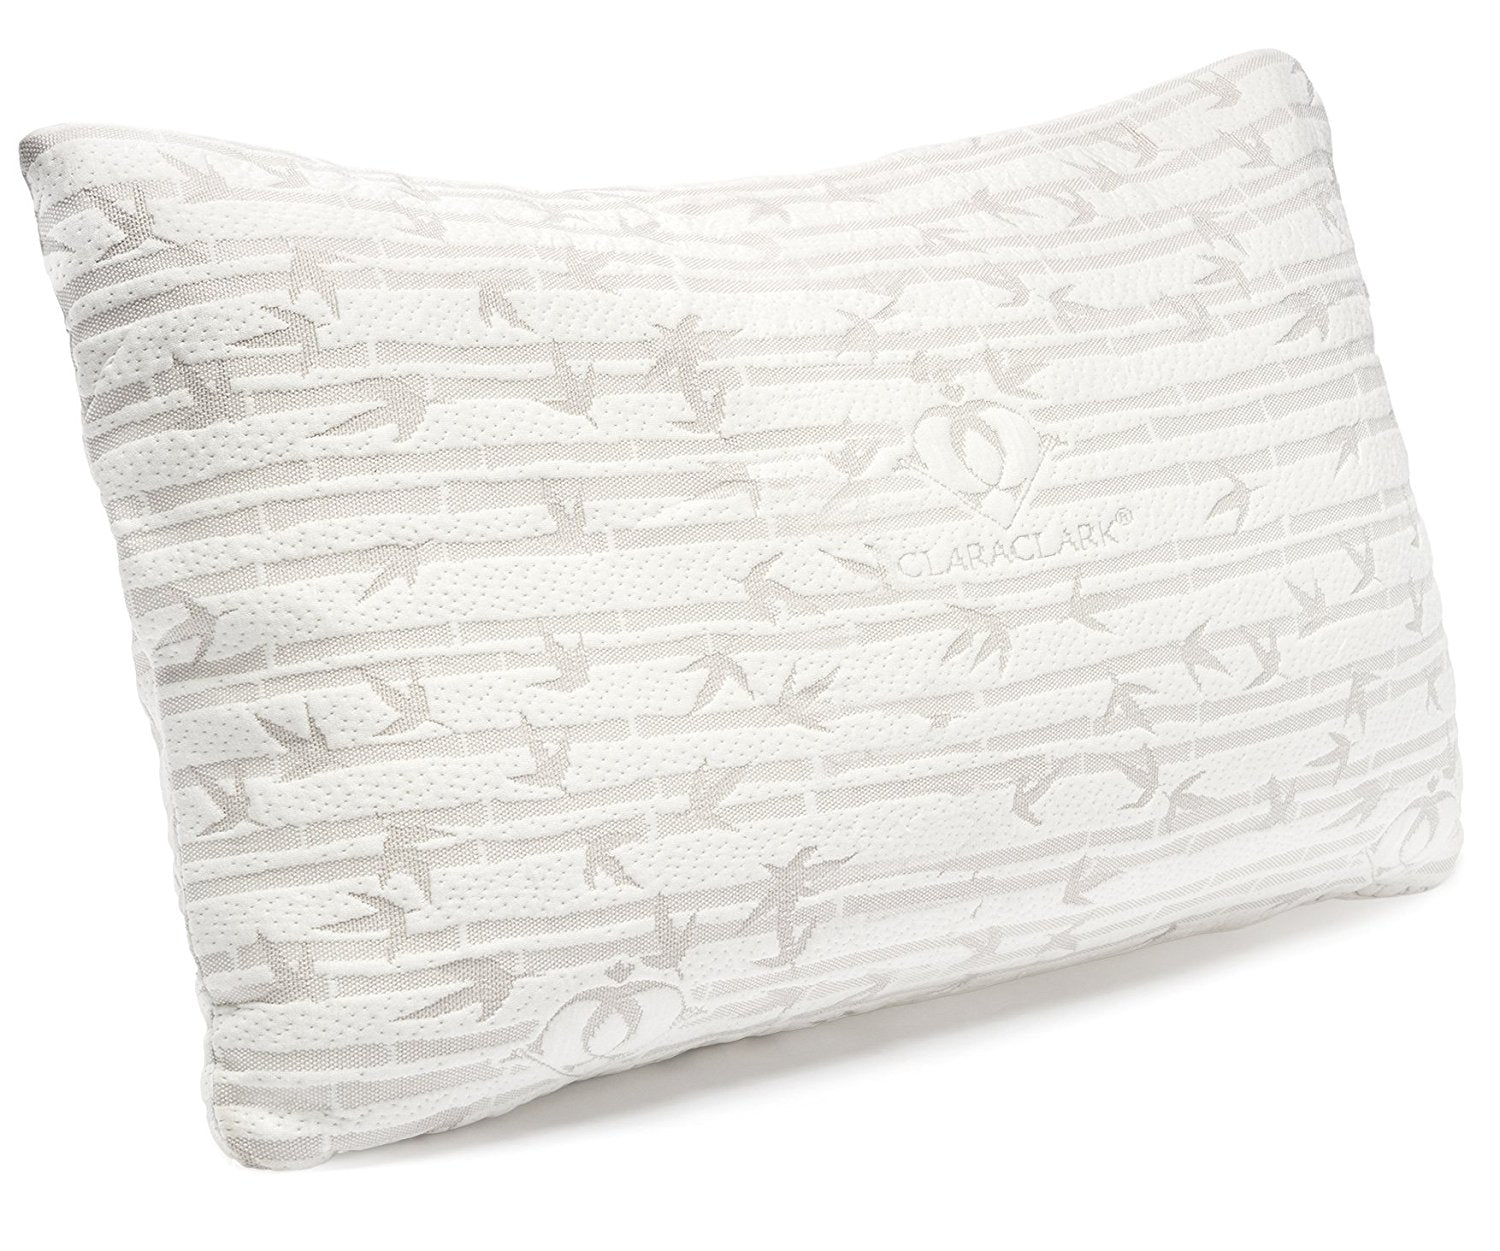 whatsintoday foam duo memory shop pillow awesomeness sleep cutaway pillows latex